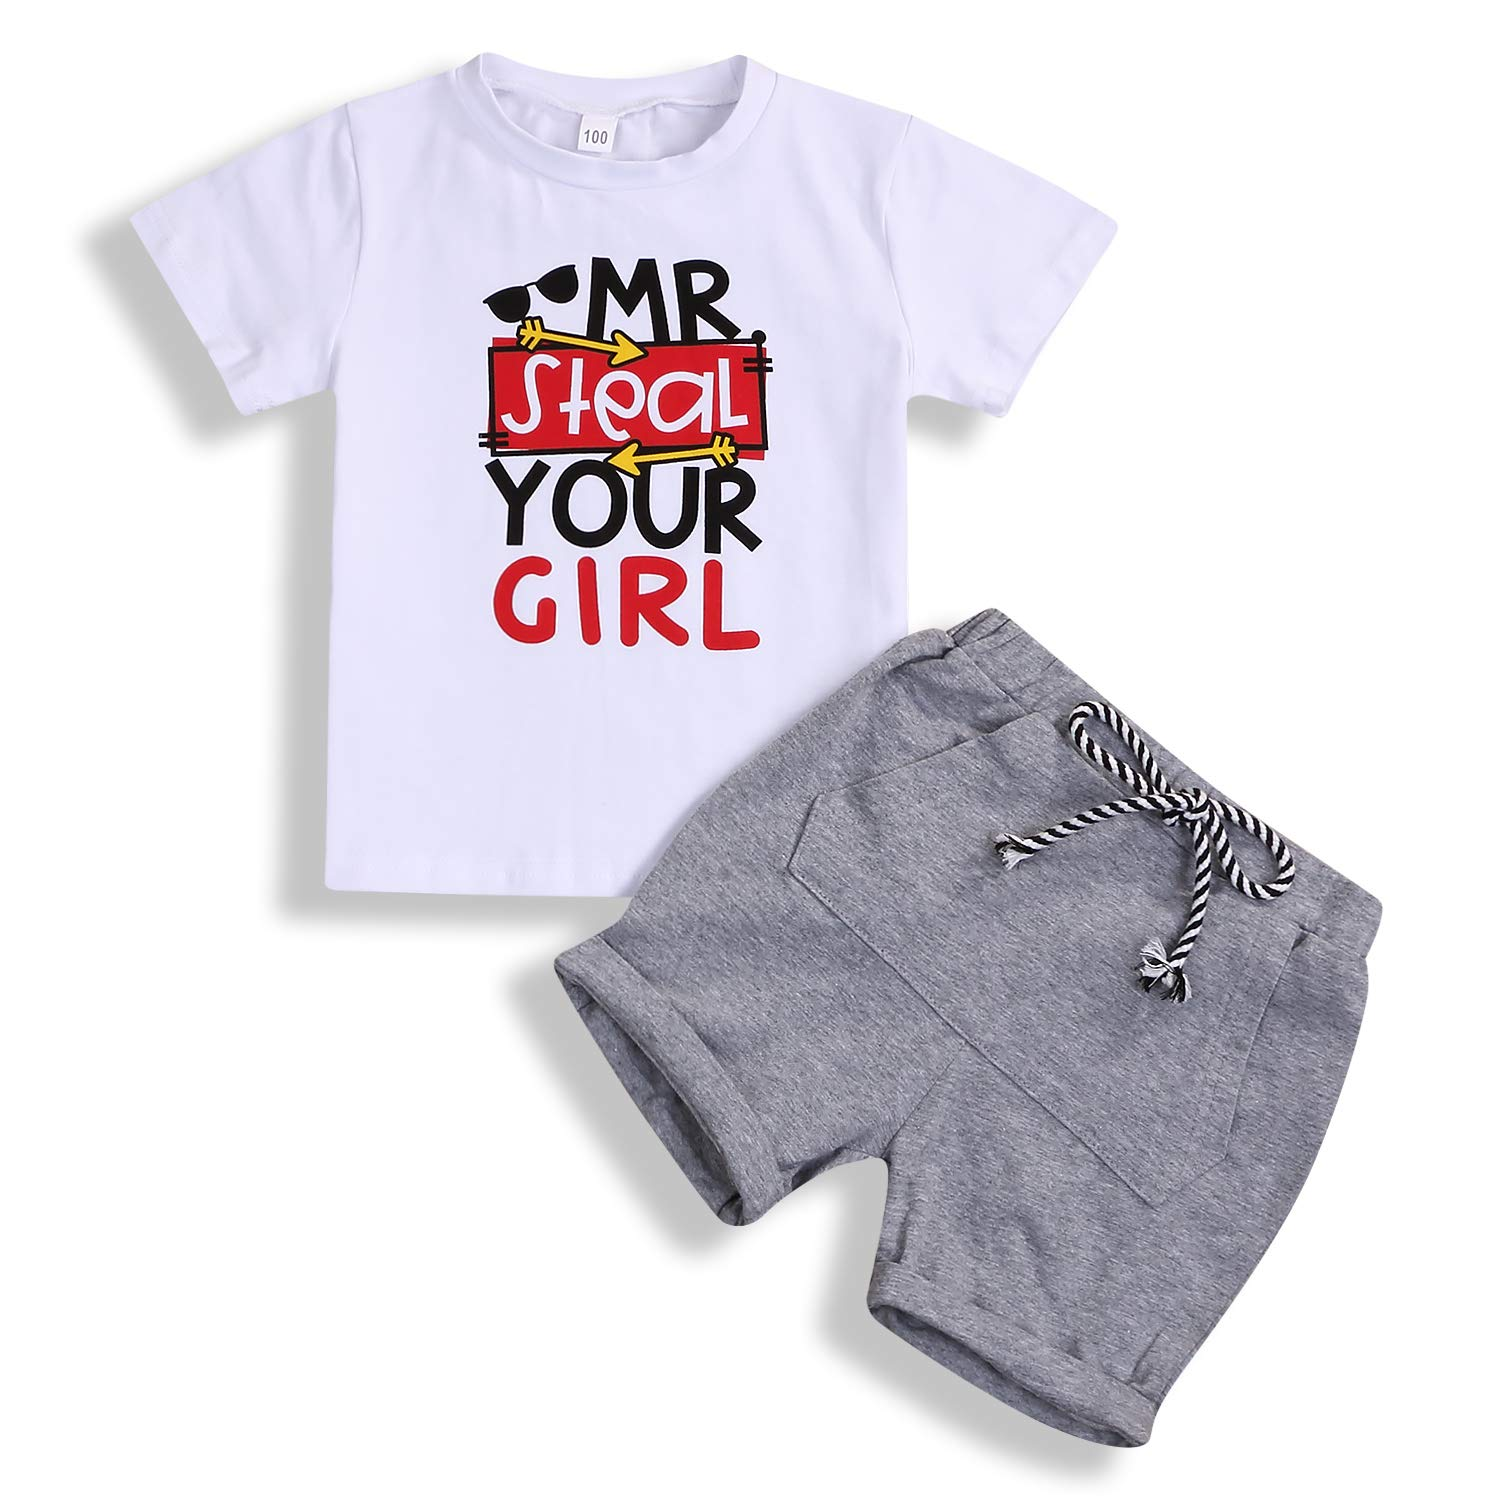 Toddler Baby Boy Summer Outfit Letter Print Shirt Top Shorts Cotton Clothes Set